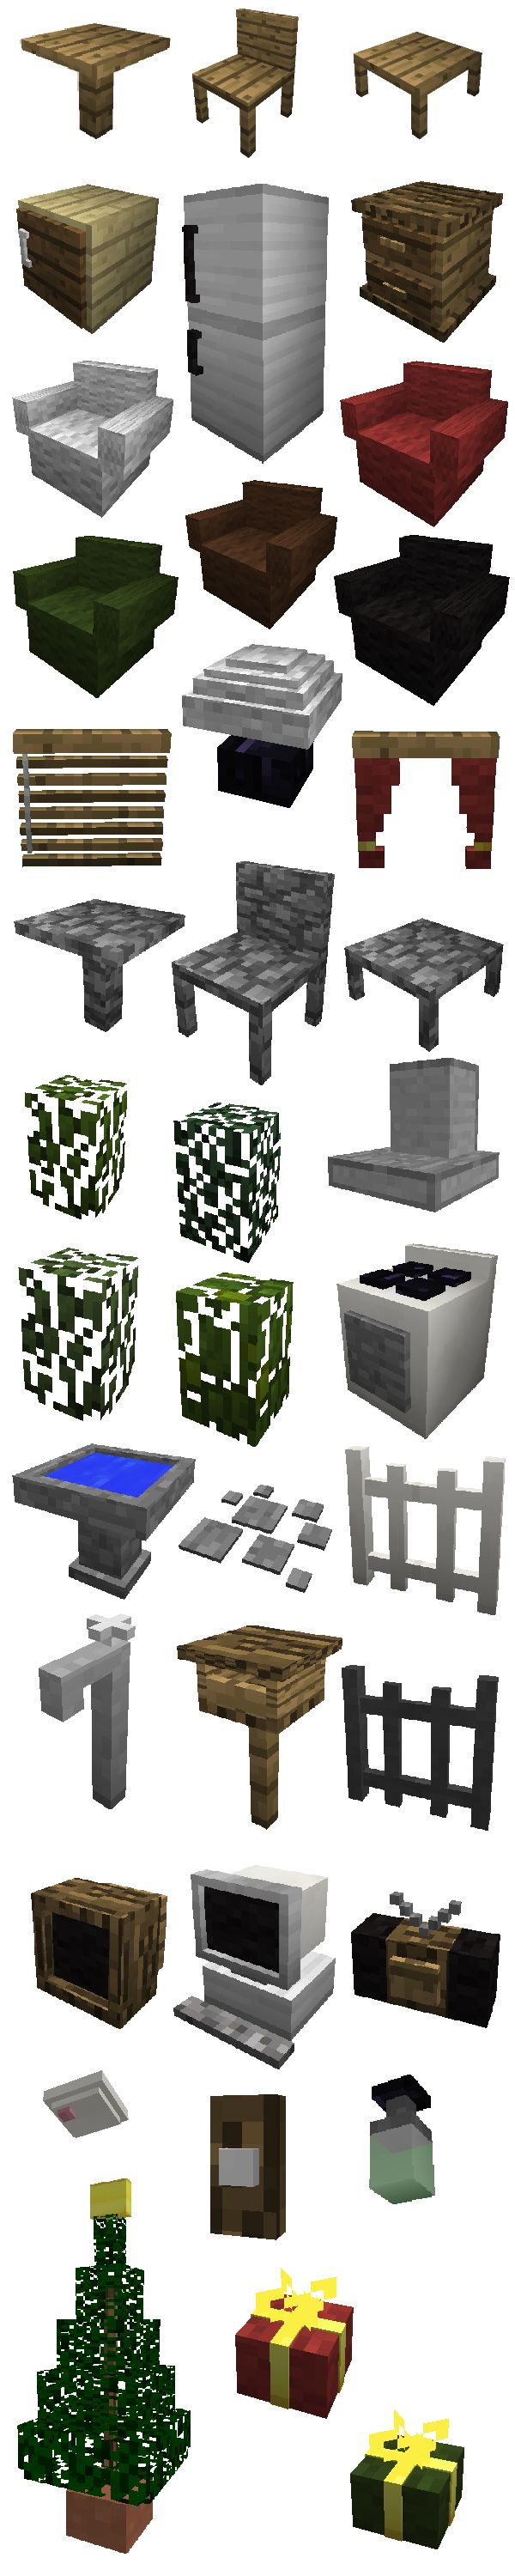 The Minecraft Furniture Mod By Mr Crayfish Presented My Brook Flint